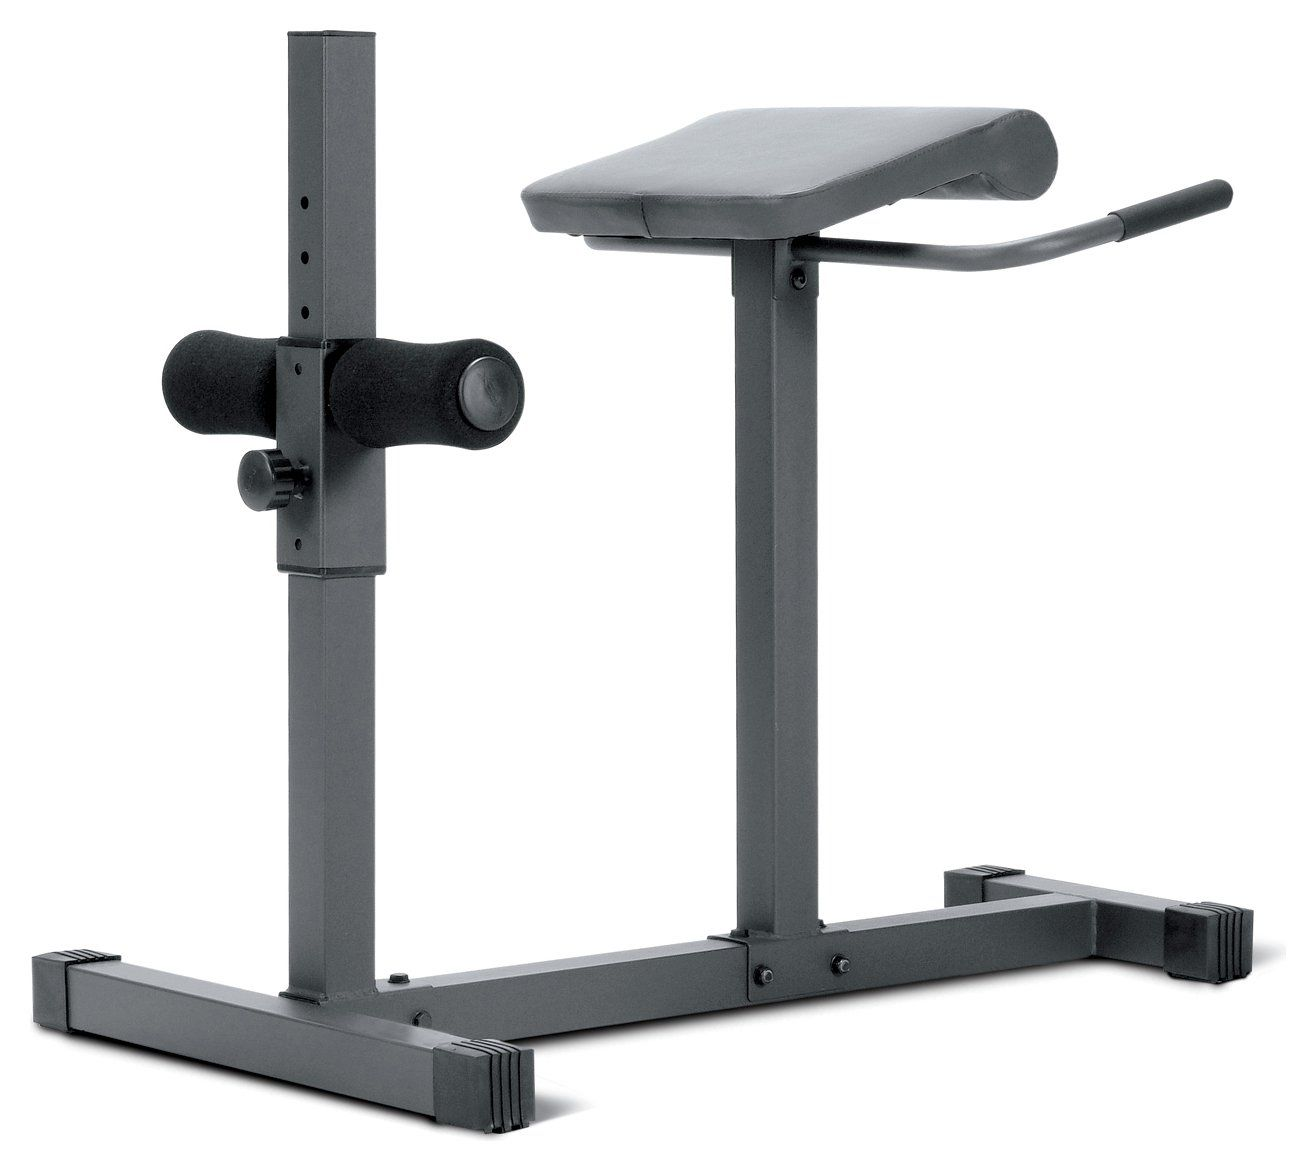 Buy Marcy Jd3 1 Hyper Extension Roman Chair Weight Benches Argos In 2020 Roman Chair Exercises No Equipment Workout Chair Exercises